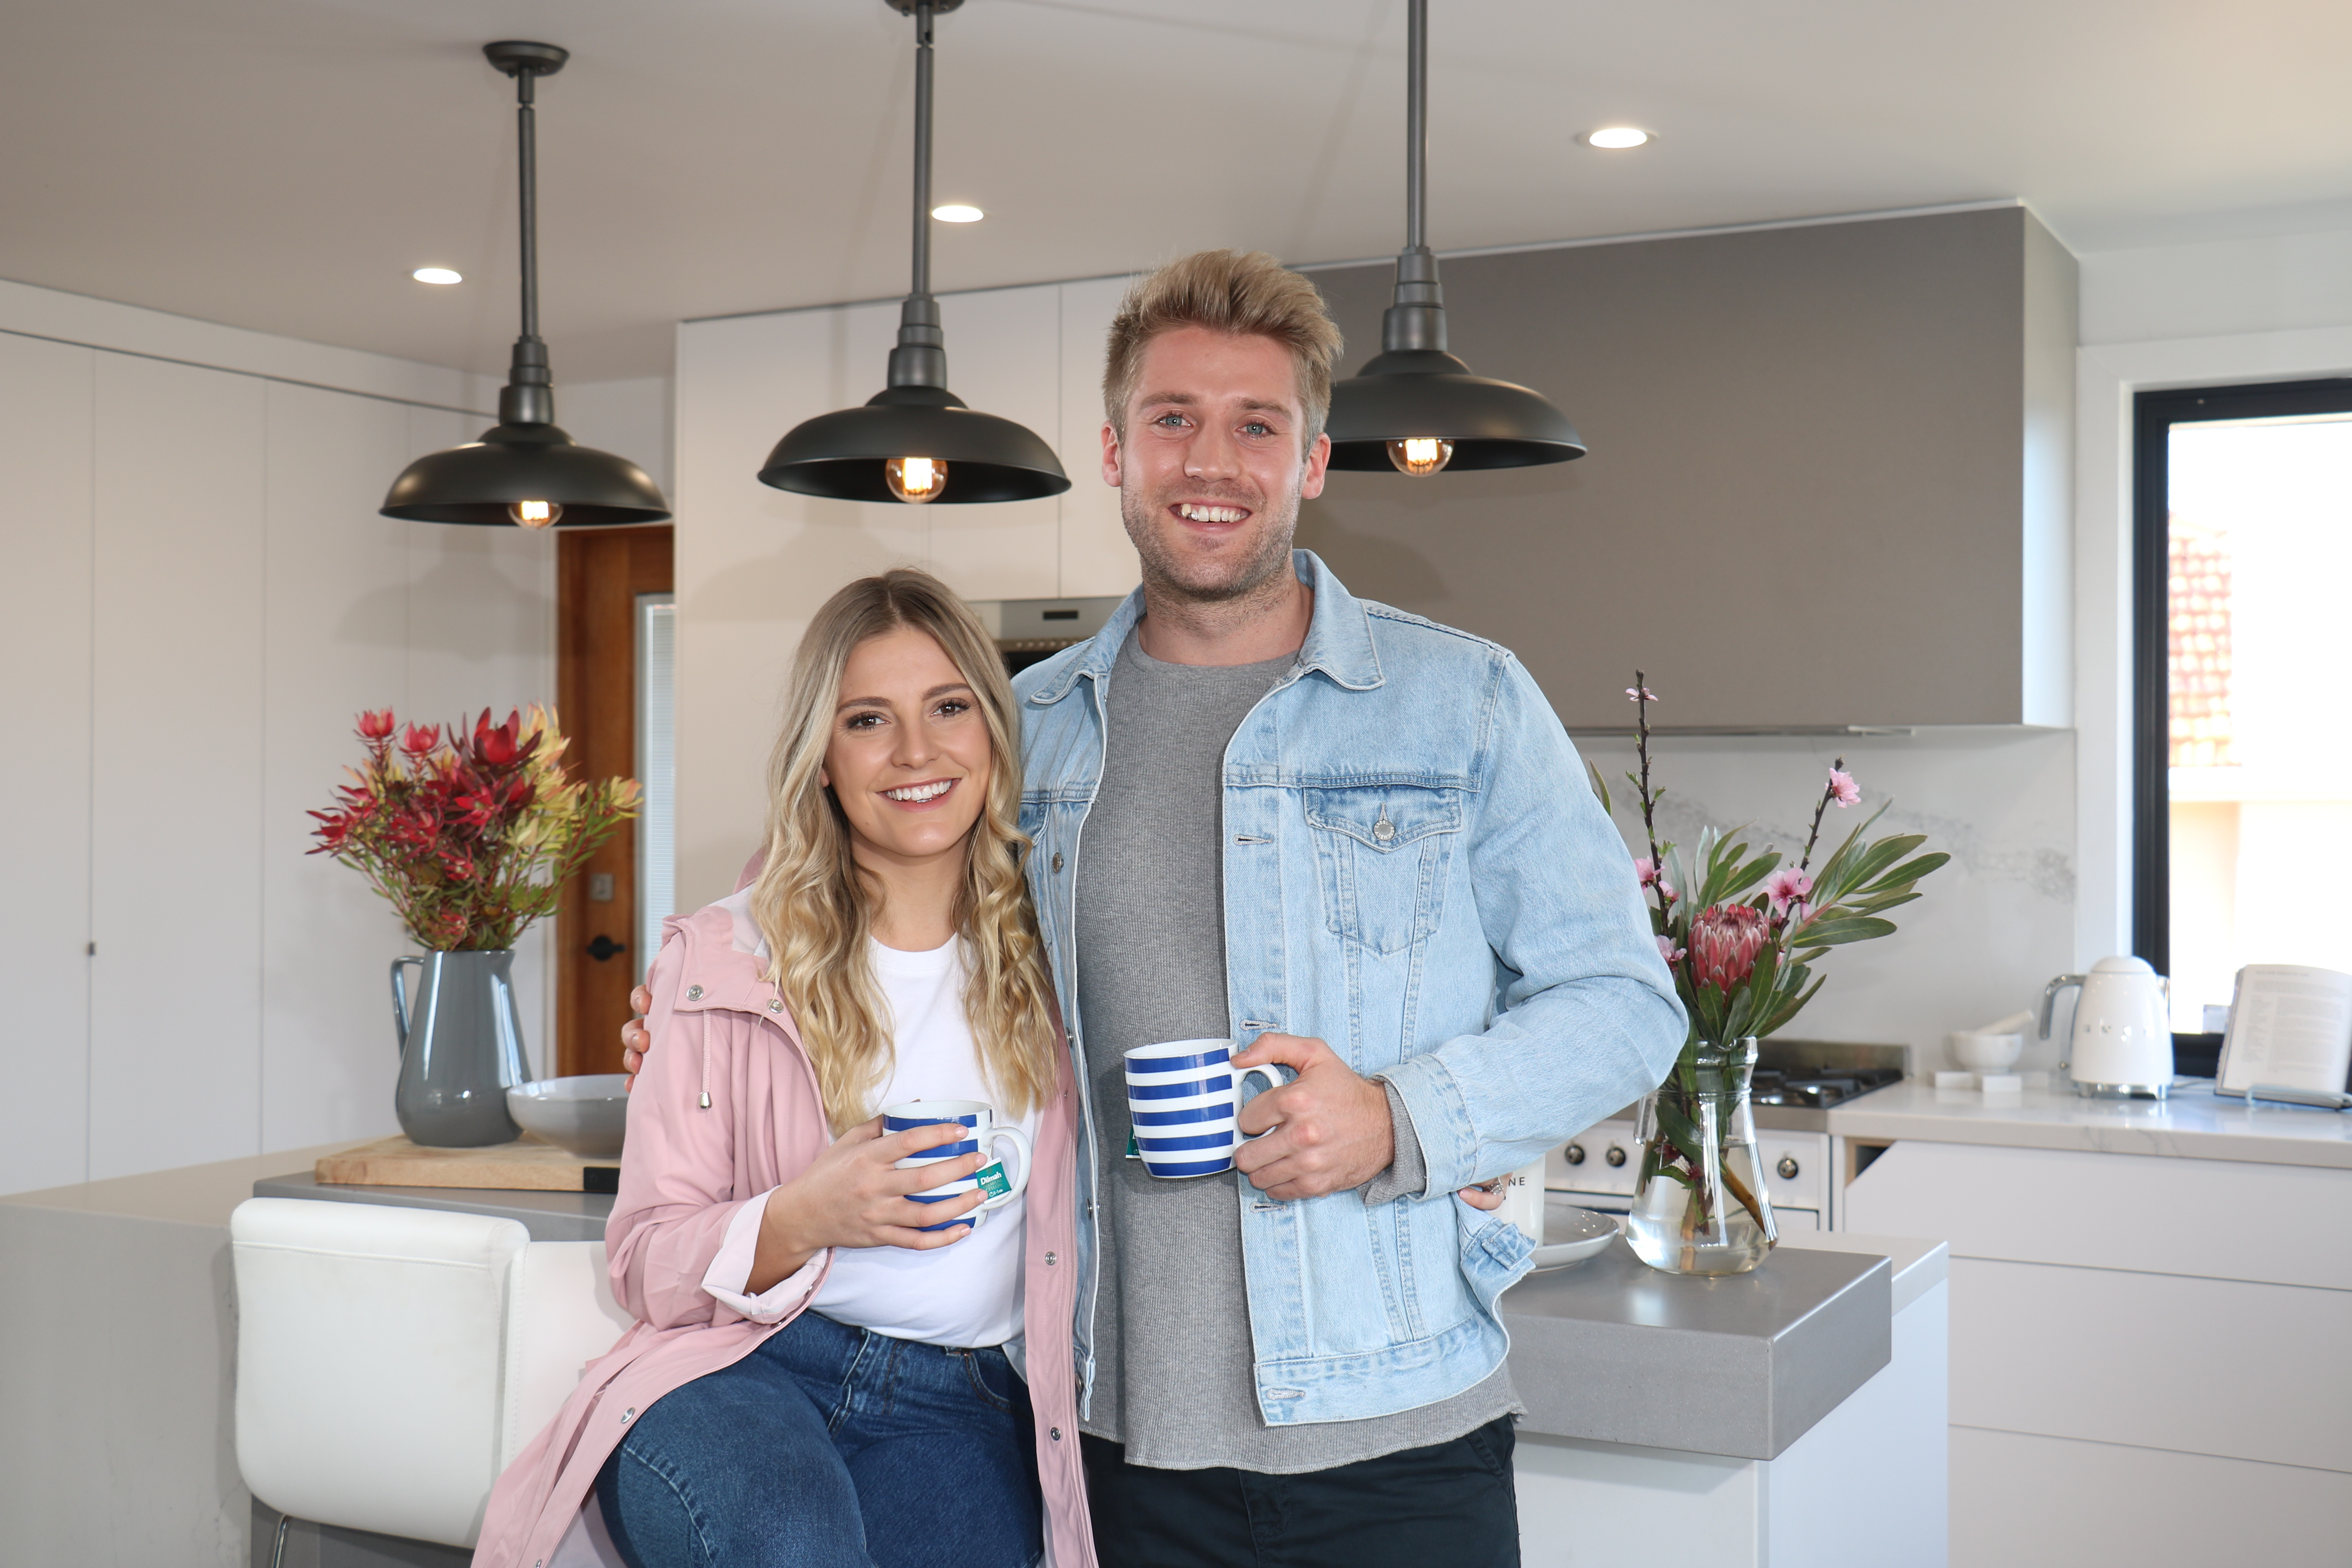 Harcourts announces 'Harcourts at Home with Sean & Ella'